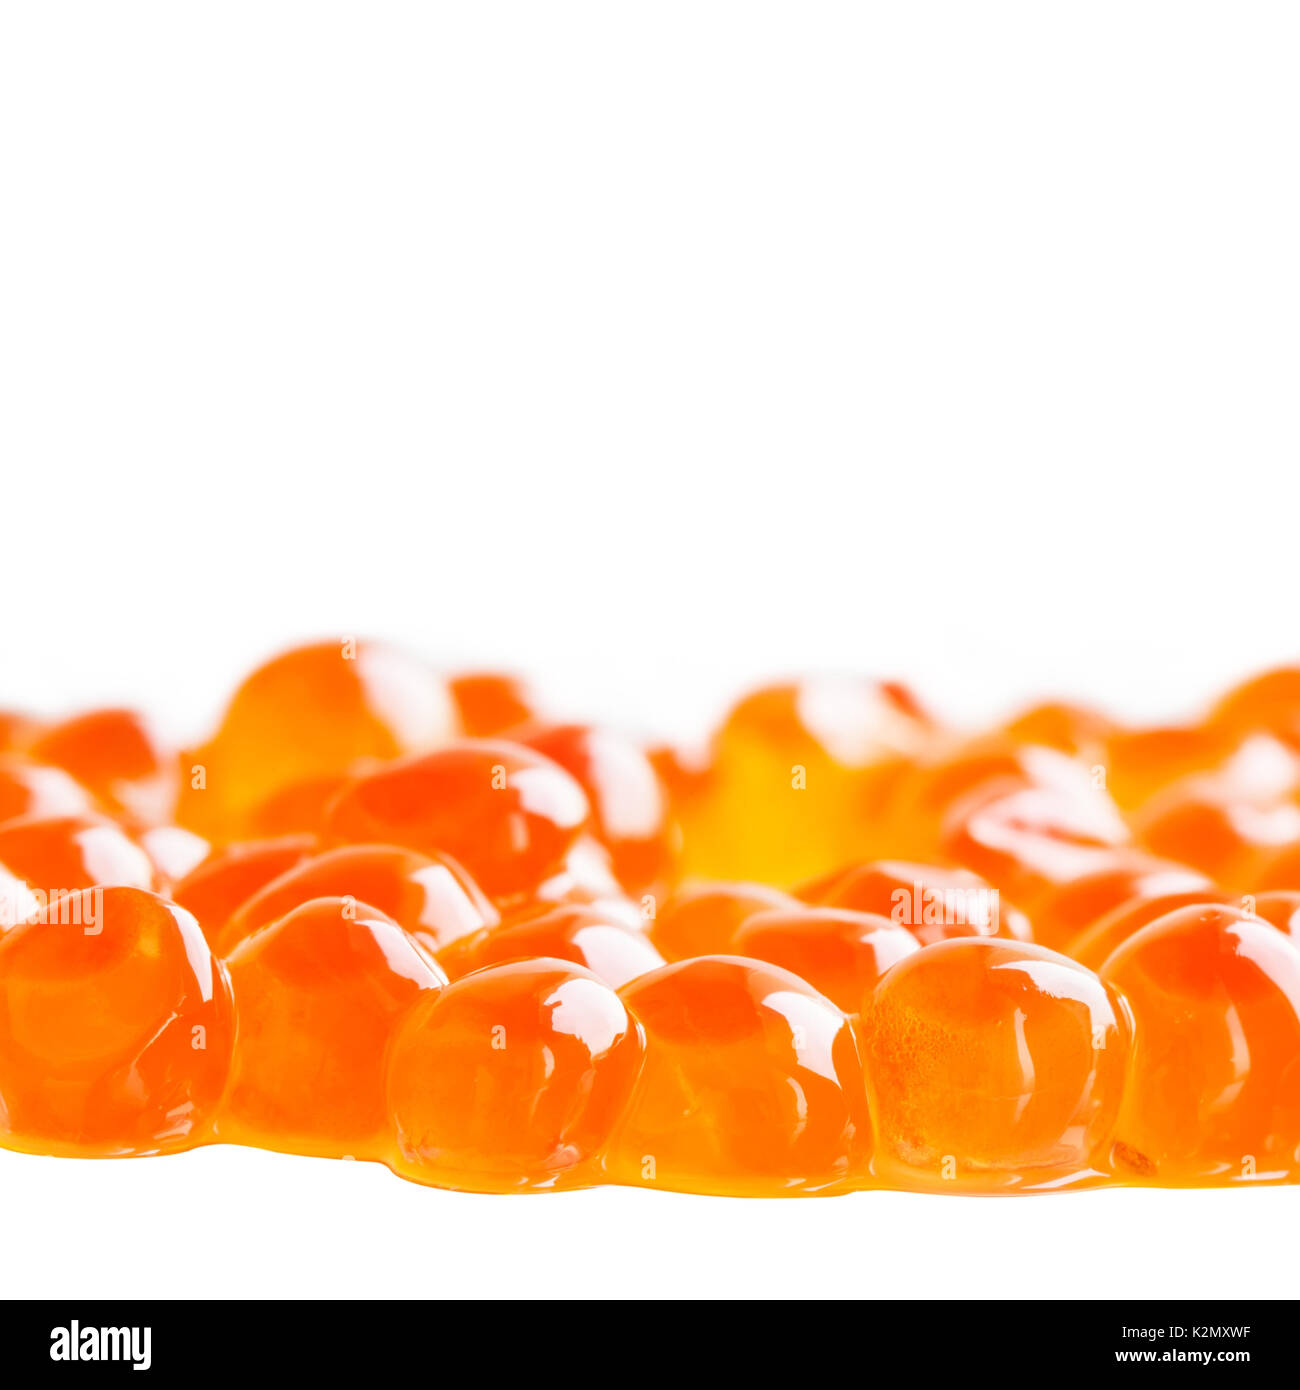 Red caviar on white background. Tradition salmon fish delicatessen healthy food macro view. Shallow depth of field, - Stock Image